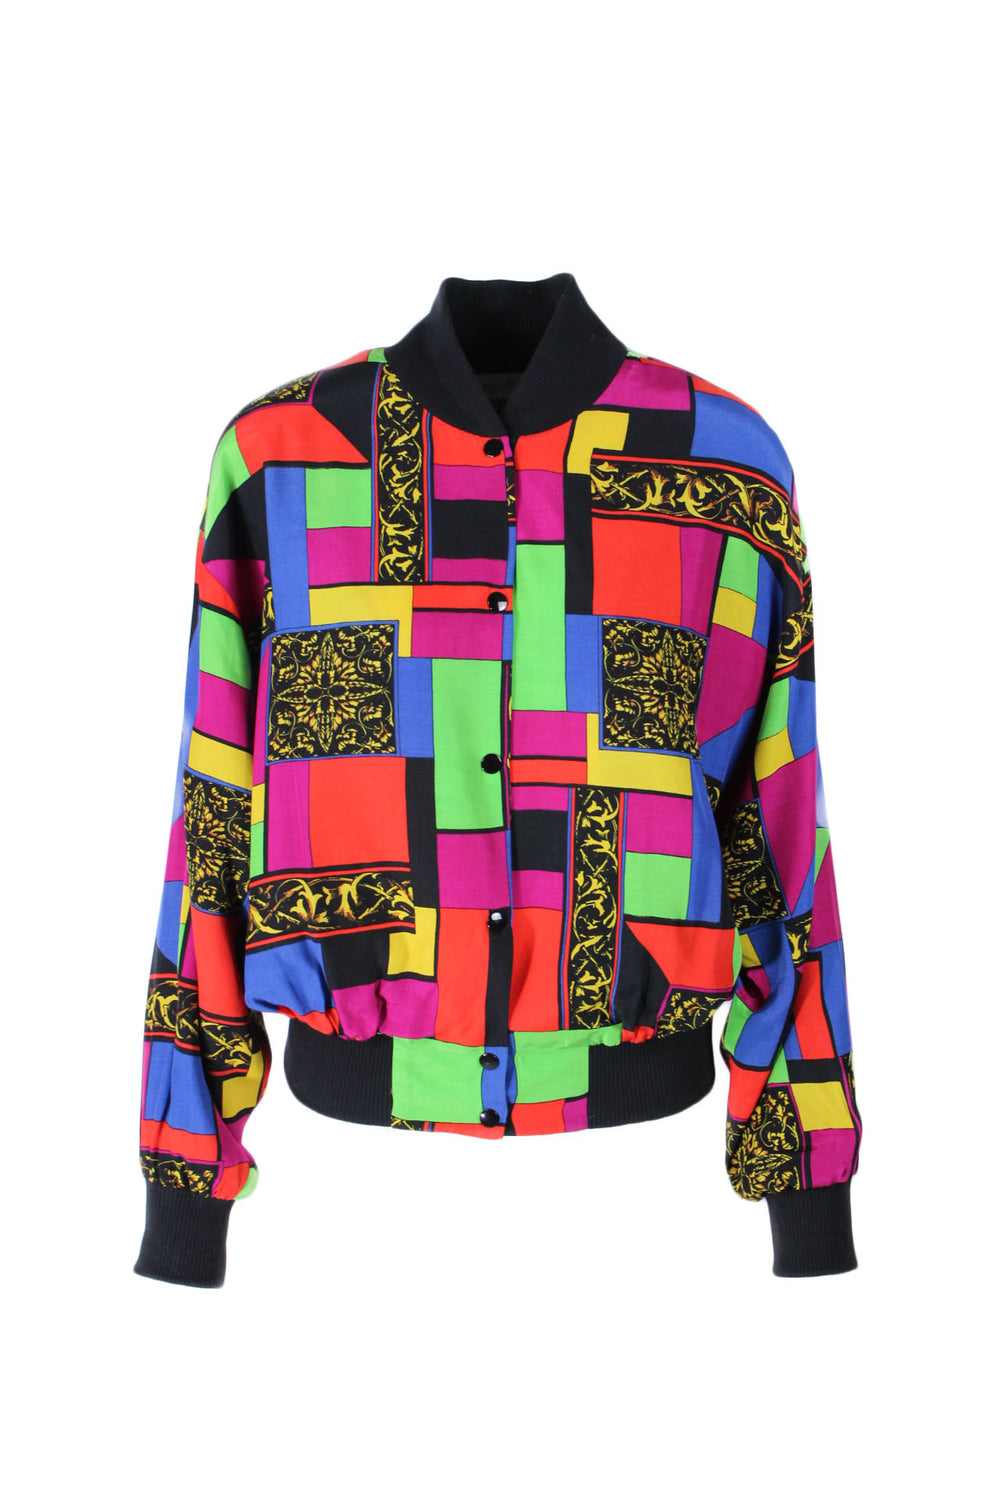 nora zandré color block patterned jacket. features light shoulder pads & snap button closure.